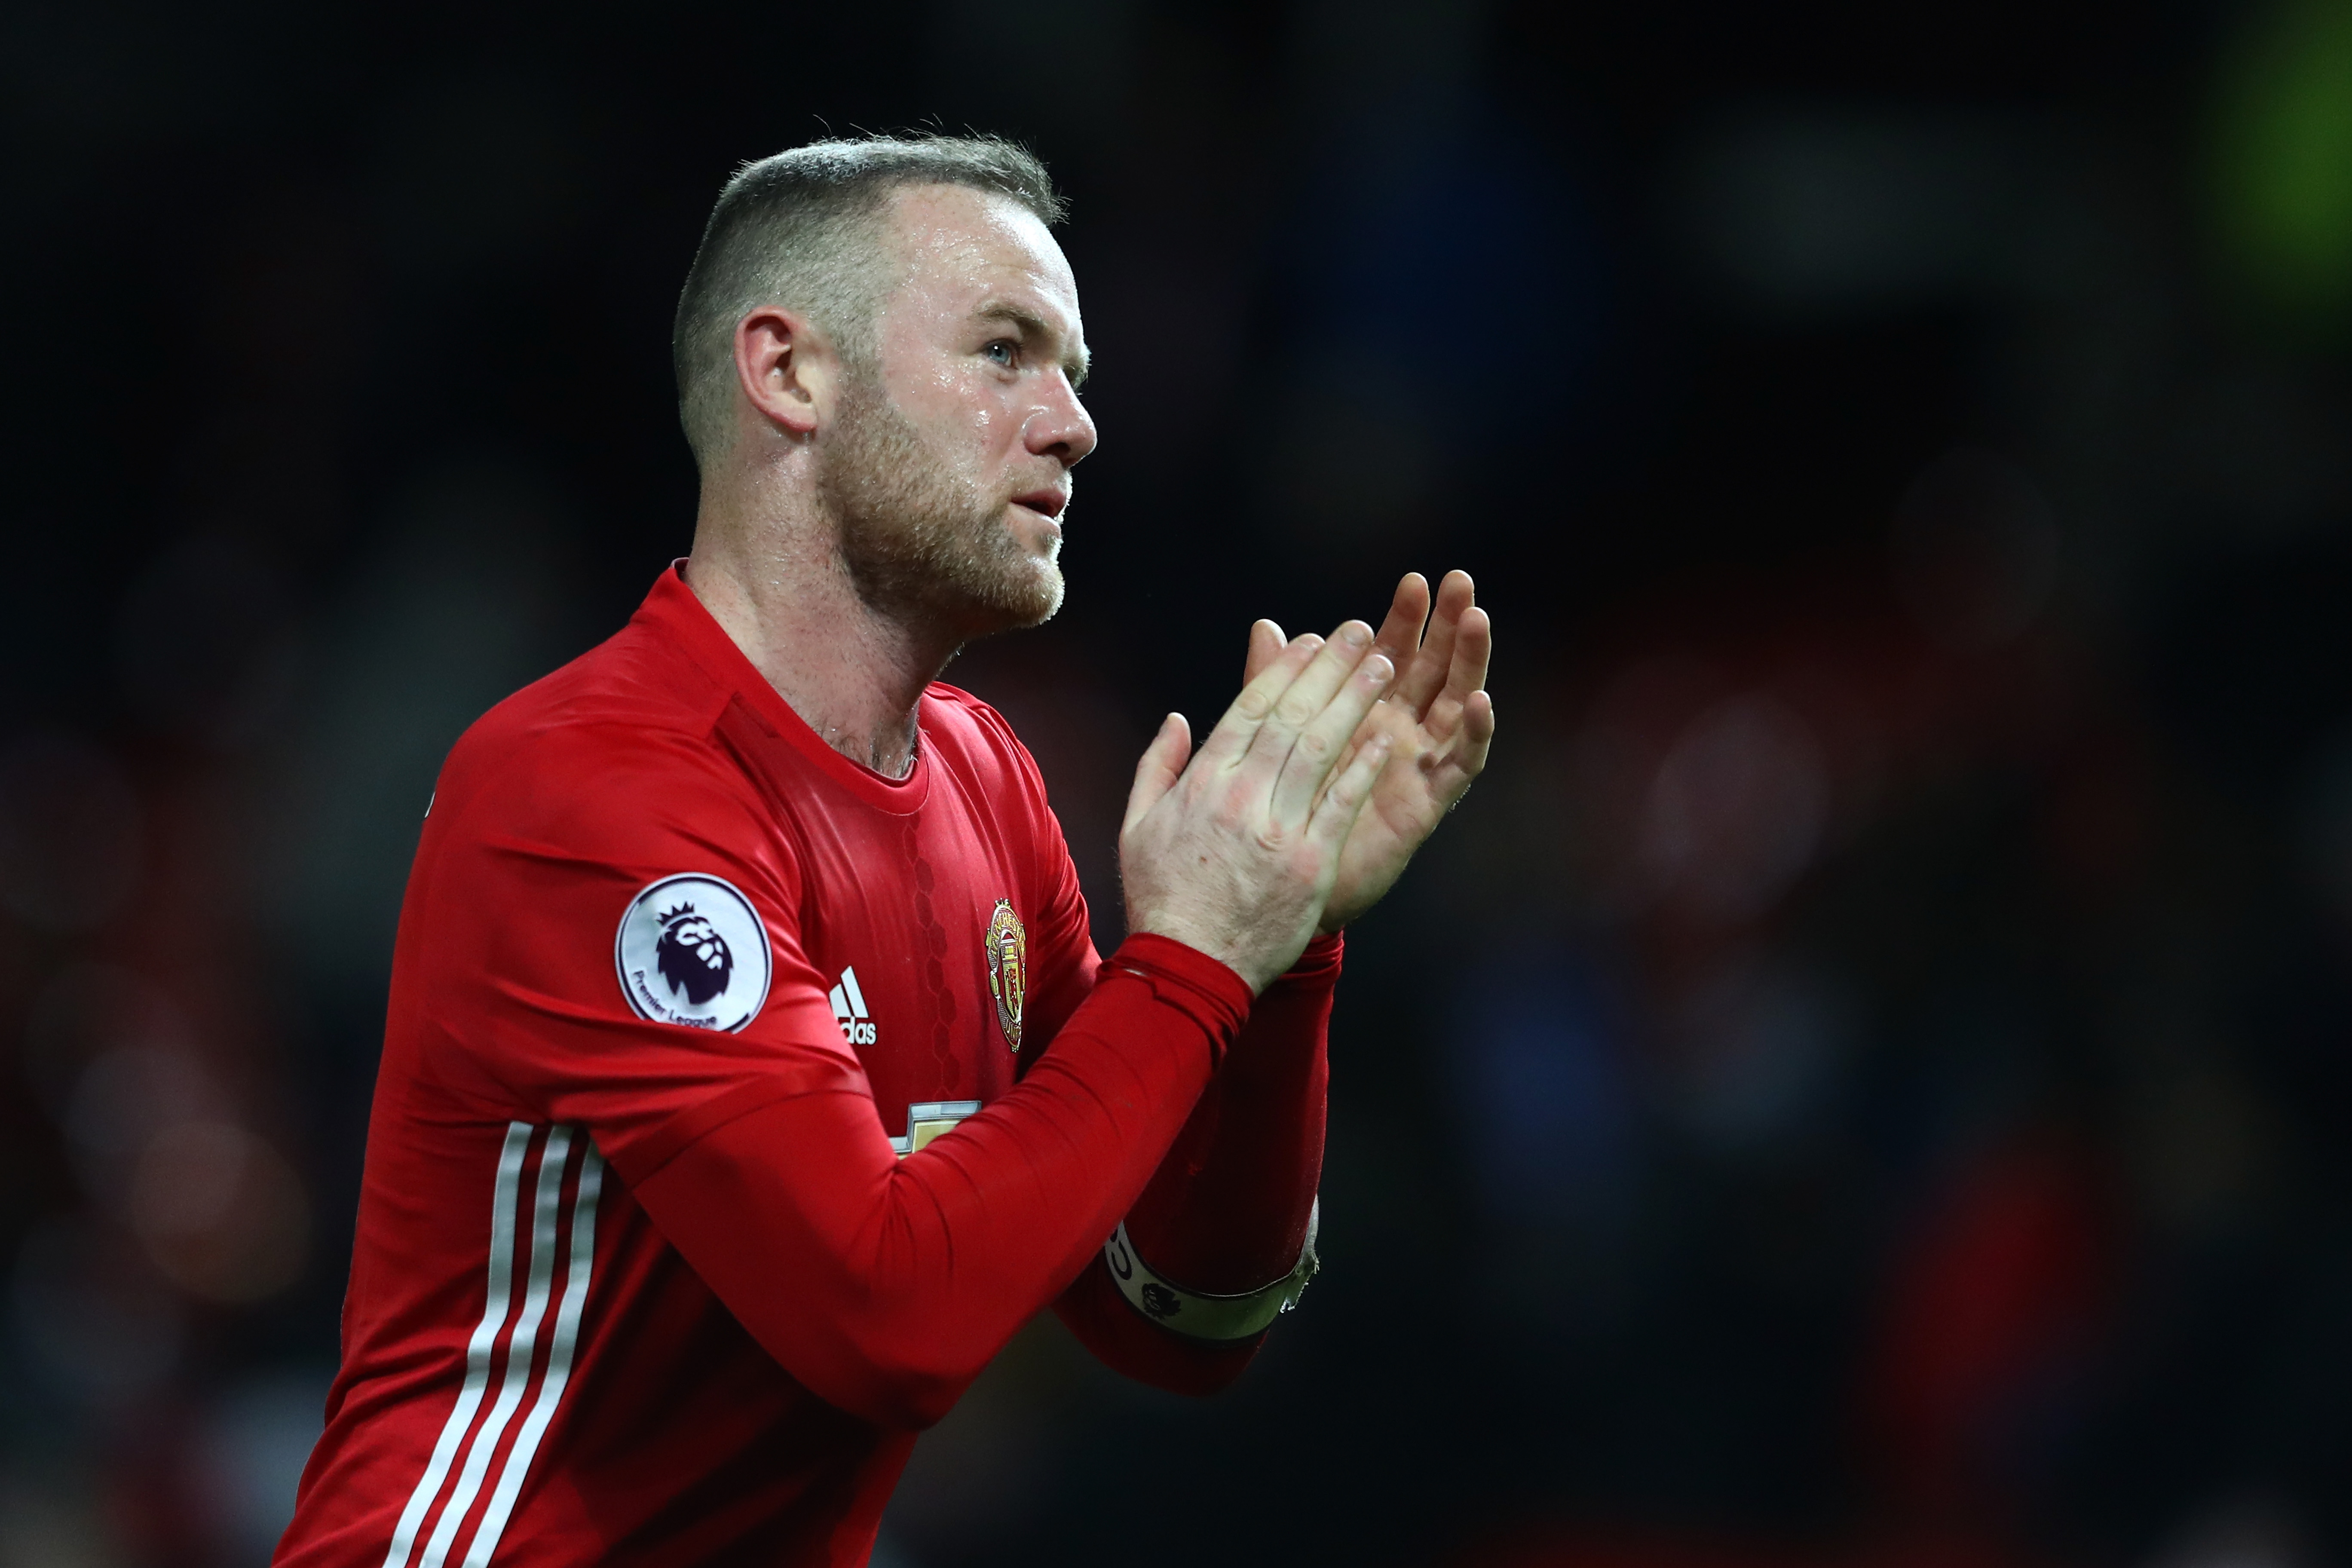 MANCHESTER, ENGLAND - FEBRUARY 01: Wayne Rooney of Manchester United applauds supporters during the Premier League match between Manchester United and Hull City at Old Trafford on February 1, 2017 in Manchester, England. (Photo by Clive Mason/Getty Images)